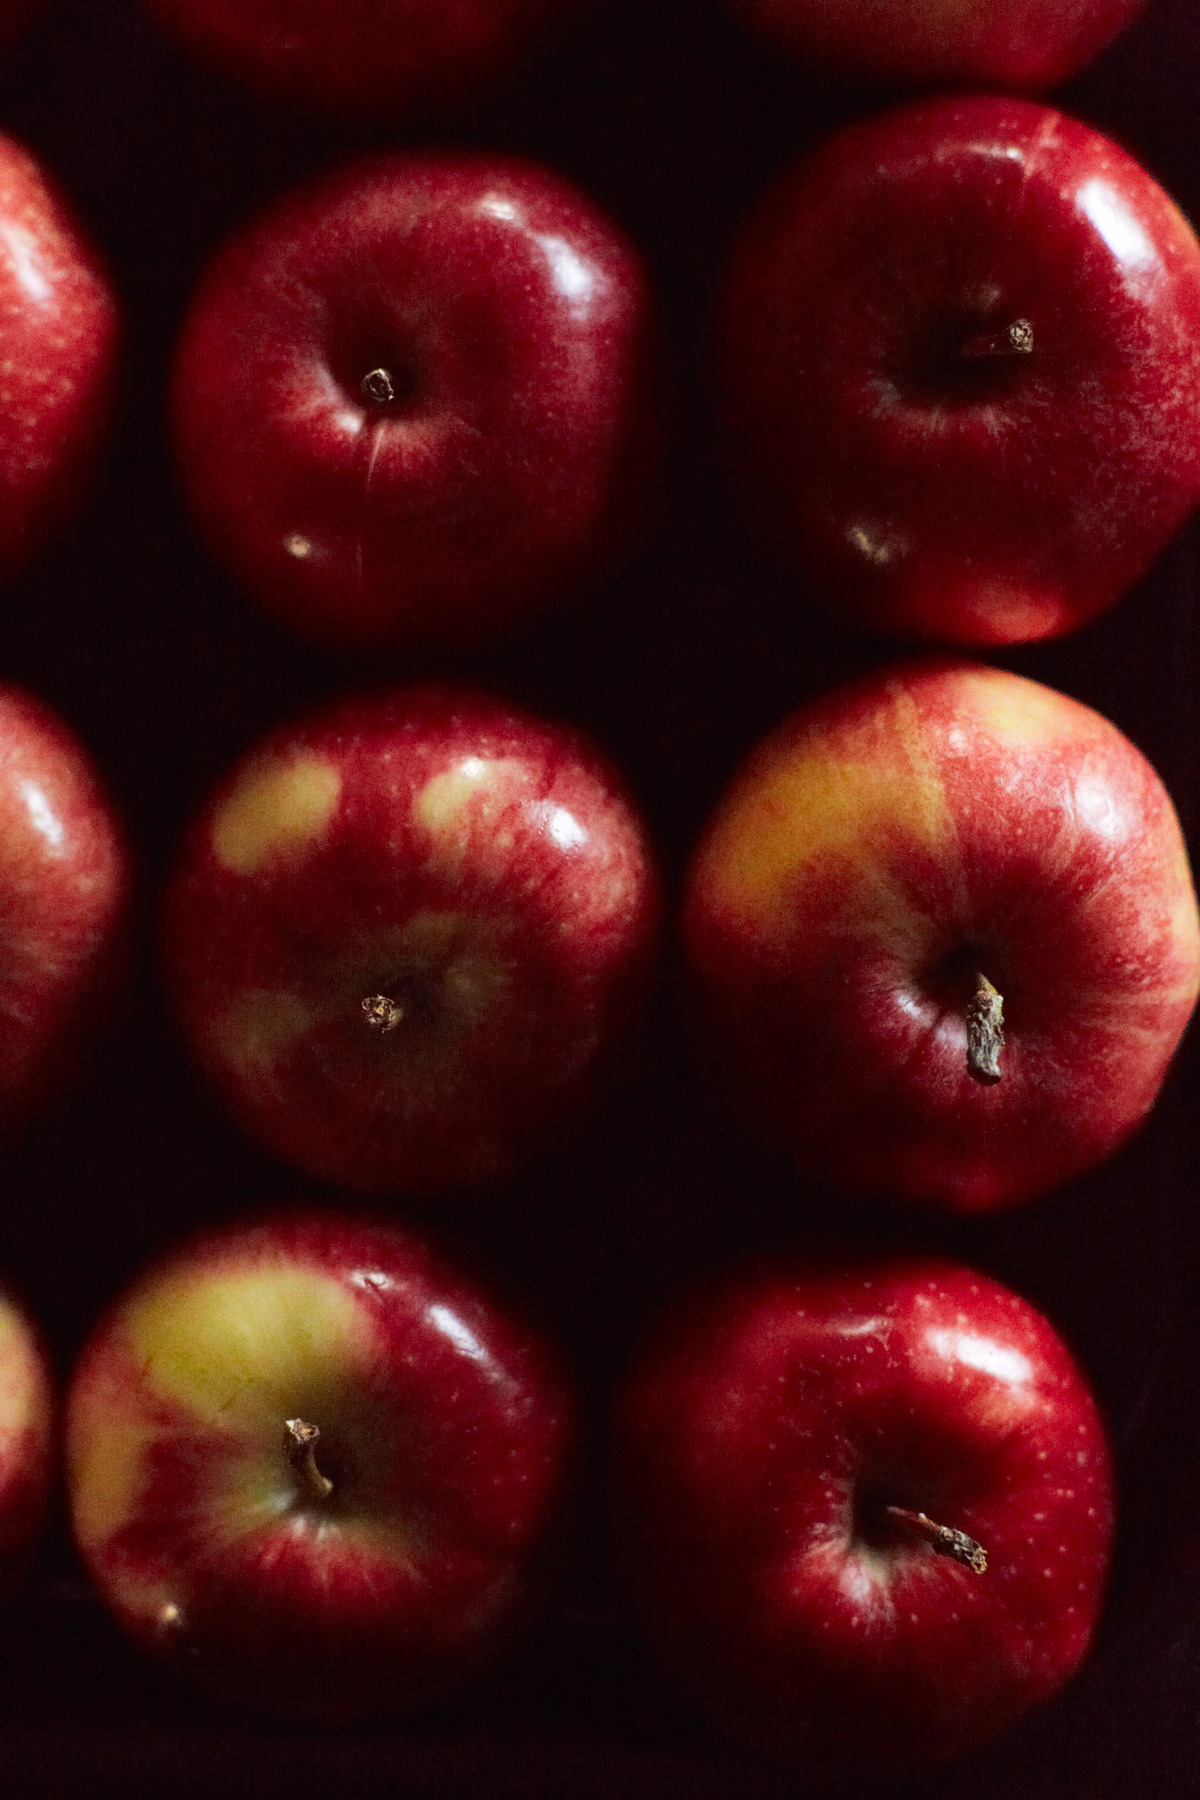 Luckily for us, apples have been pretty readily available during winter. Enjoy these facts about apples! Unfortunately, the crabapple is the only apple native to North America.  Two pounds of apples make one 9 inch pie. Most apples can be grown farther north than most other fruits, because they blossom late in spring, minimizing frost damage Read more facts here